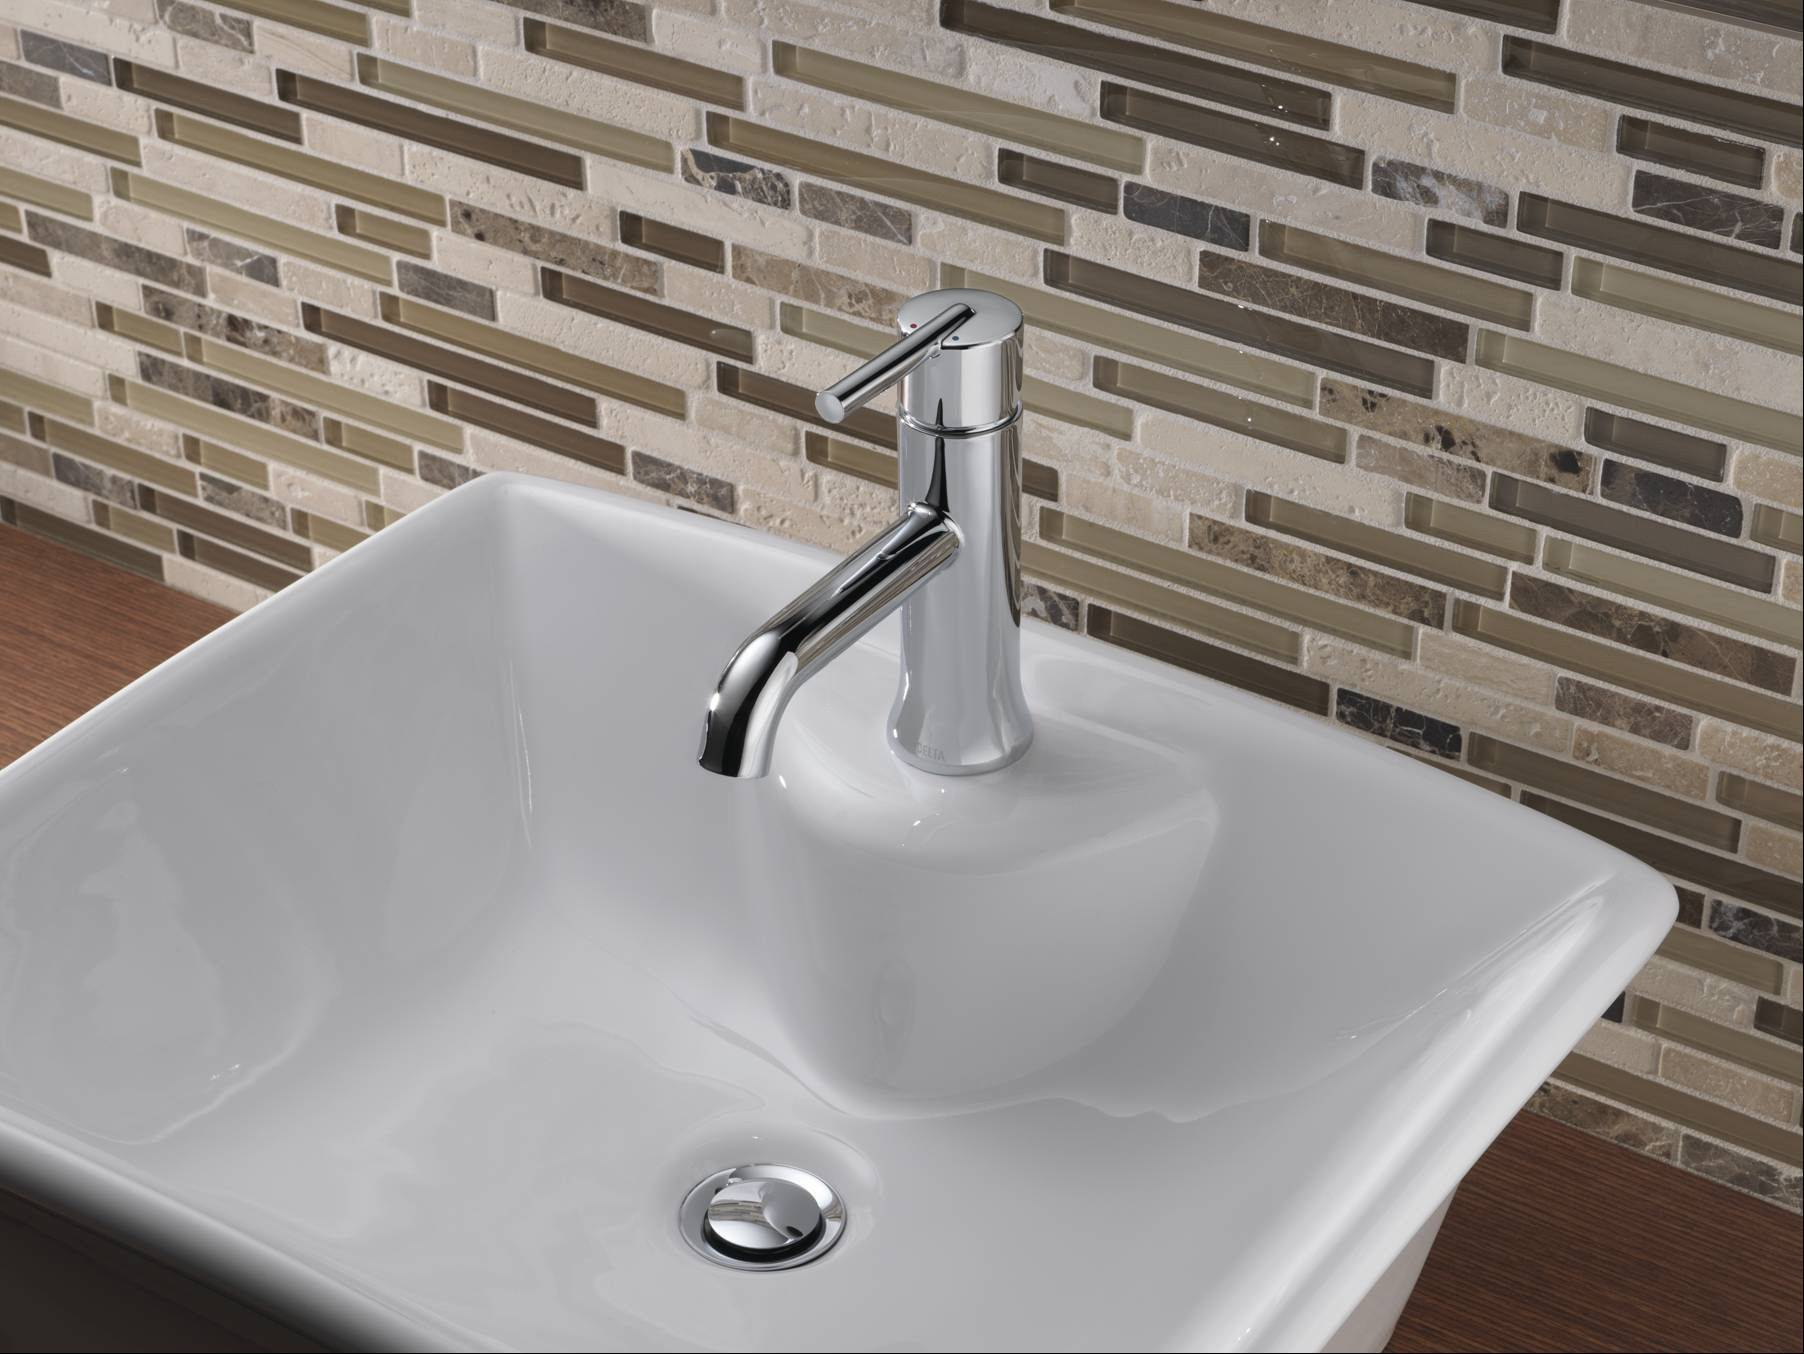 Delta introduces its Trinsic faucet collection for the bathroom, based on its kitchen series.